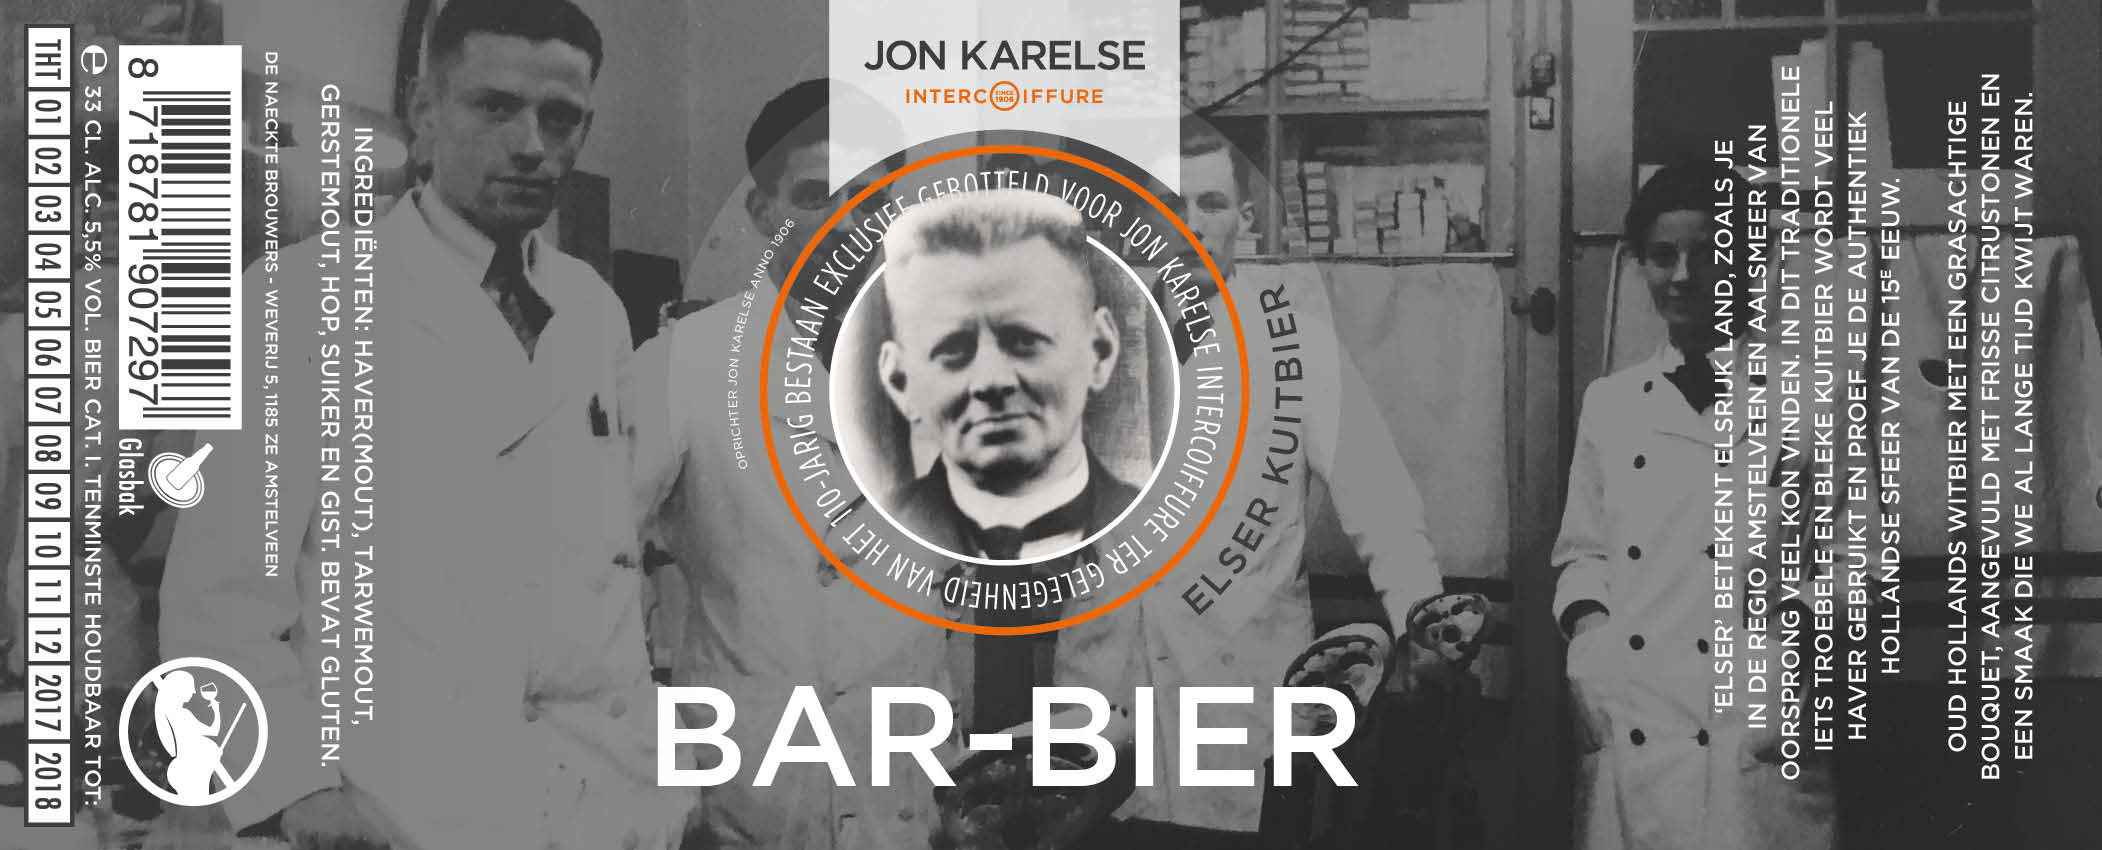 jonkarelse barbier etiket elser